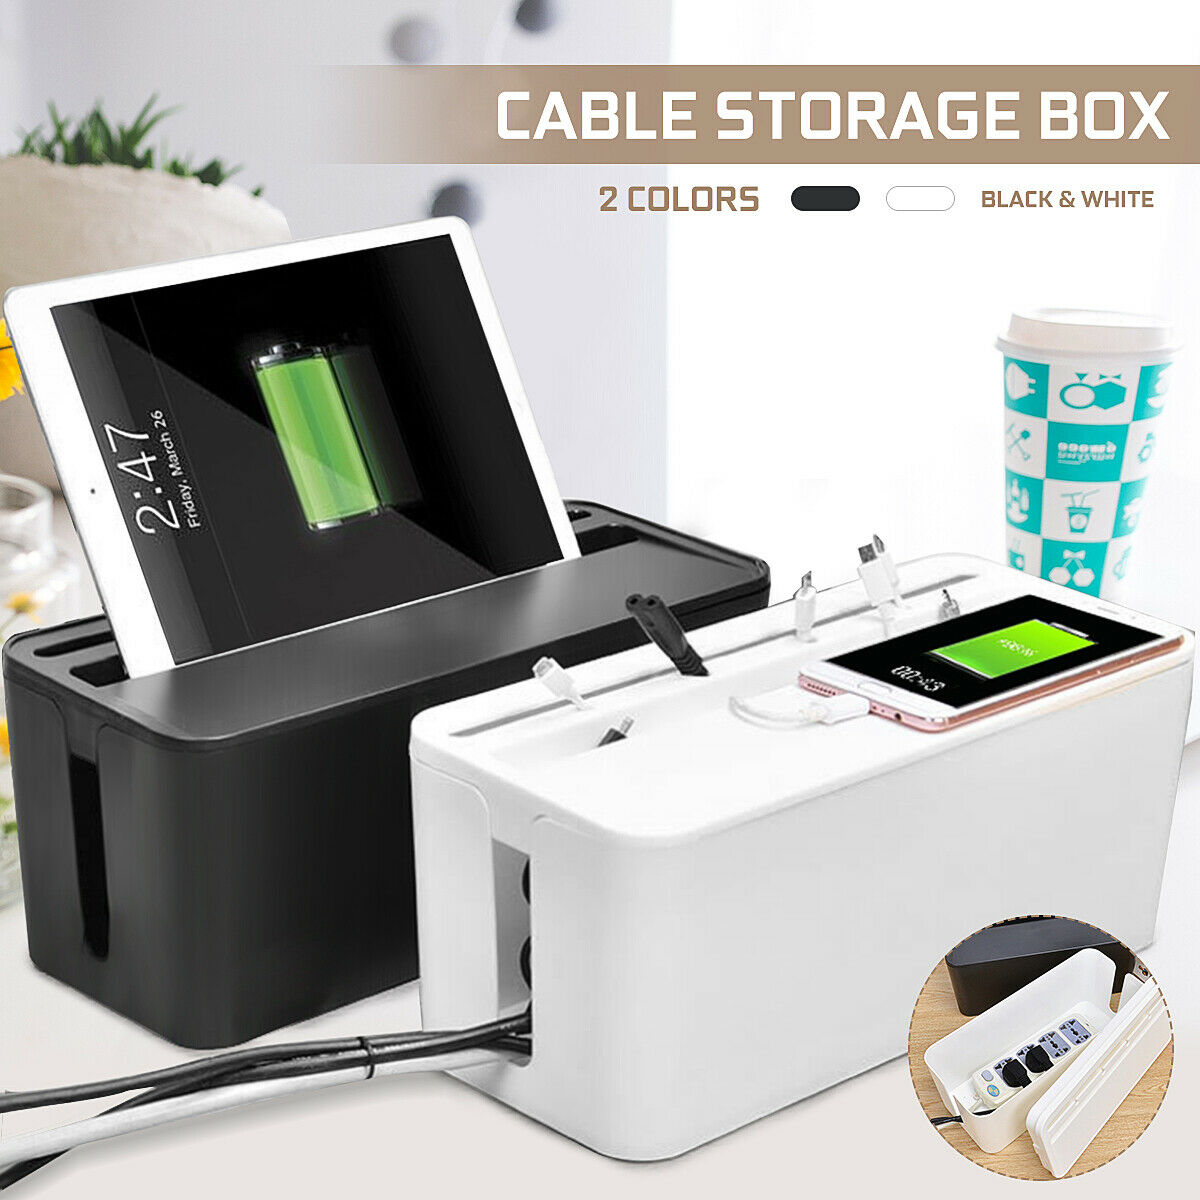 Cable Management Organizer Box for Power Strip HDMI USB Cord Hider Manager for